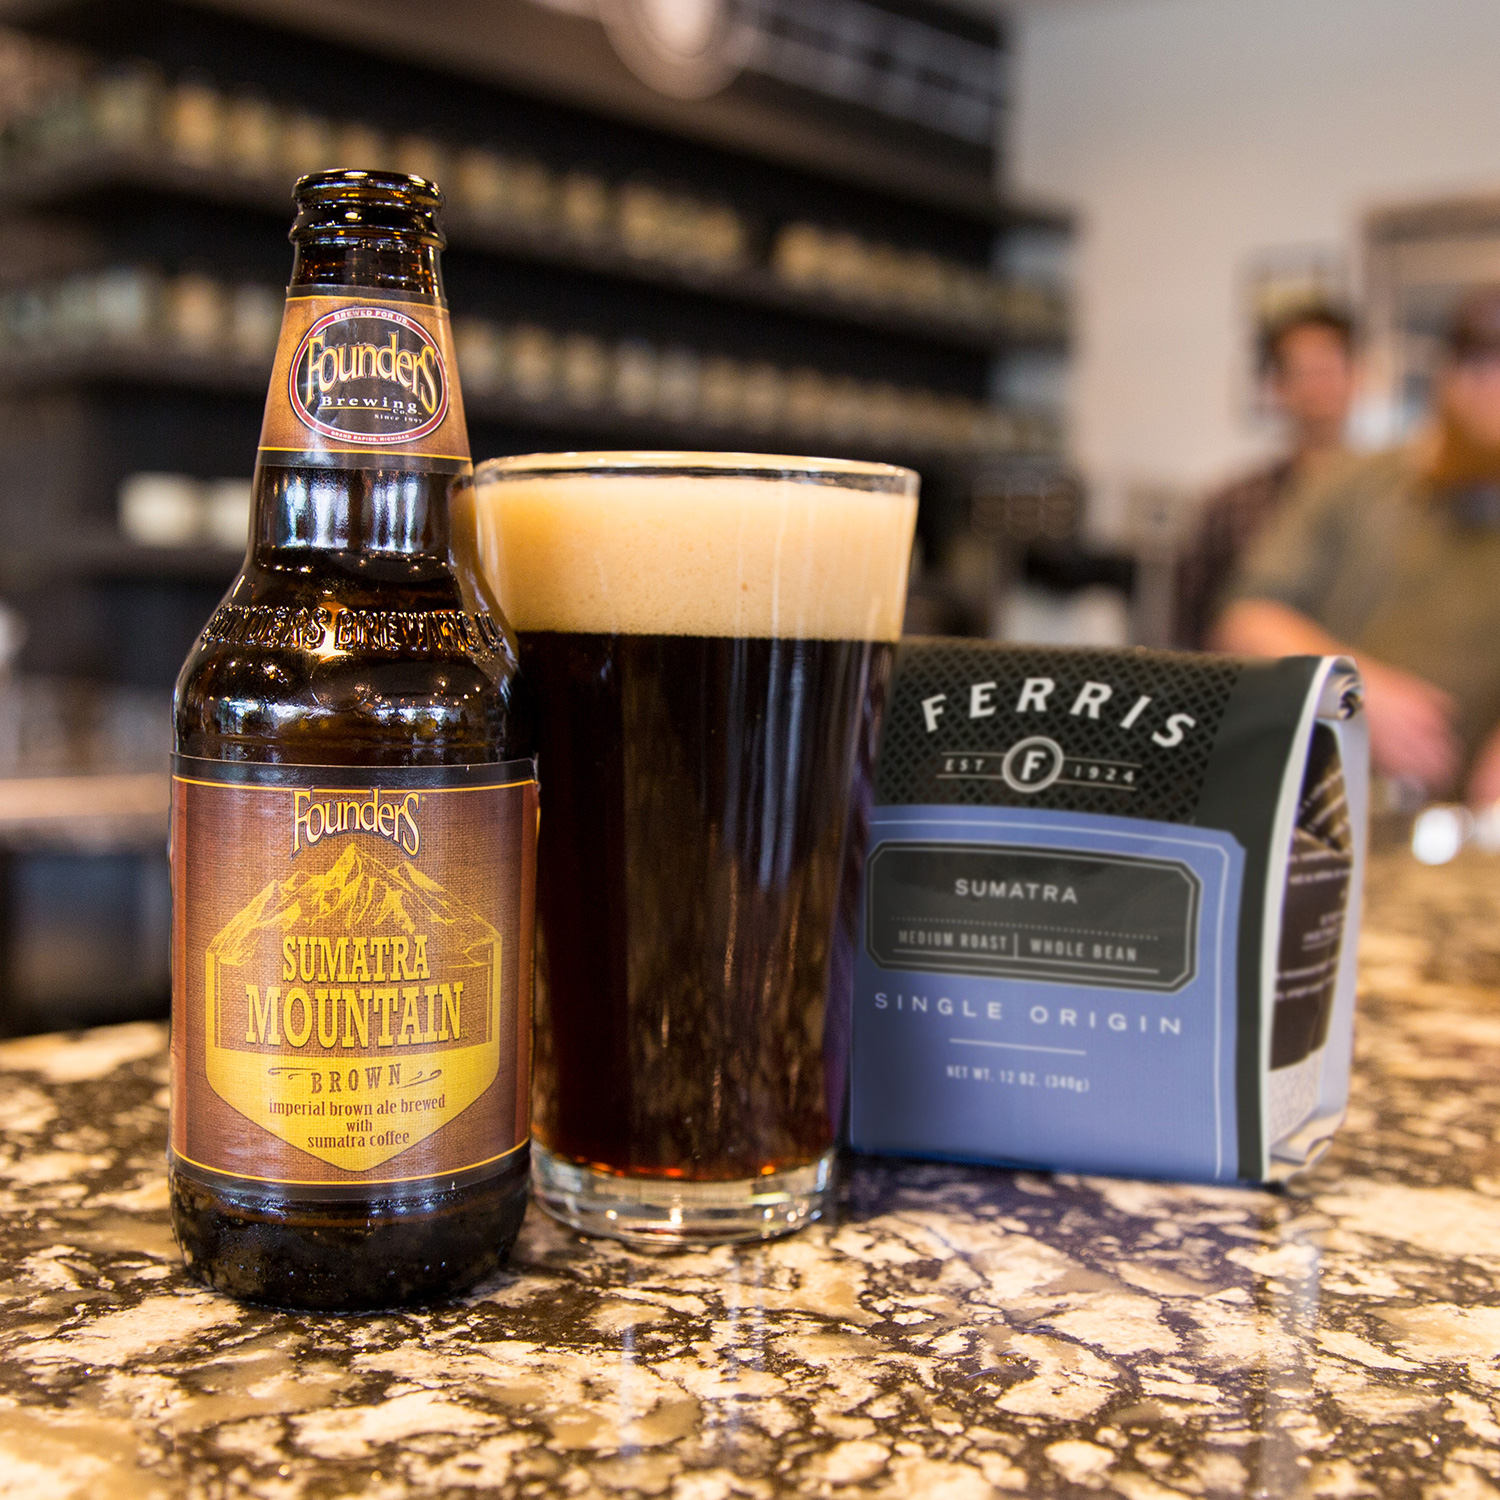 Founders Sumatra Mountain beer with Ferris coffee